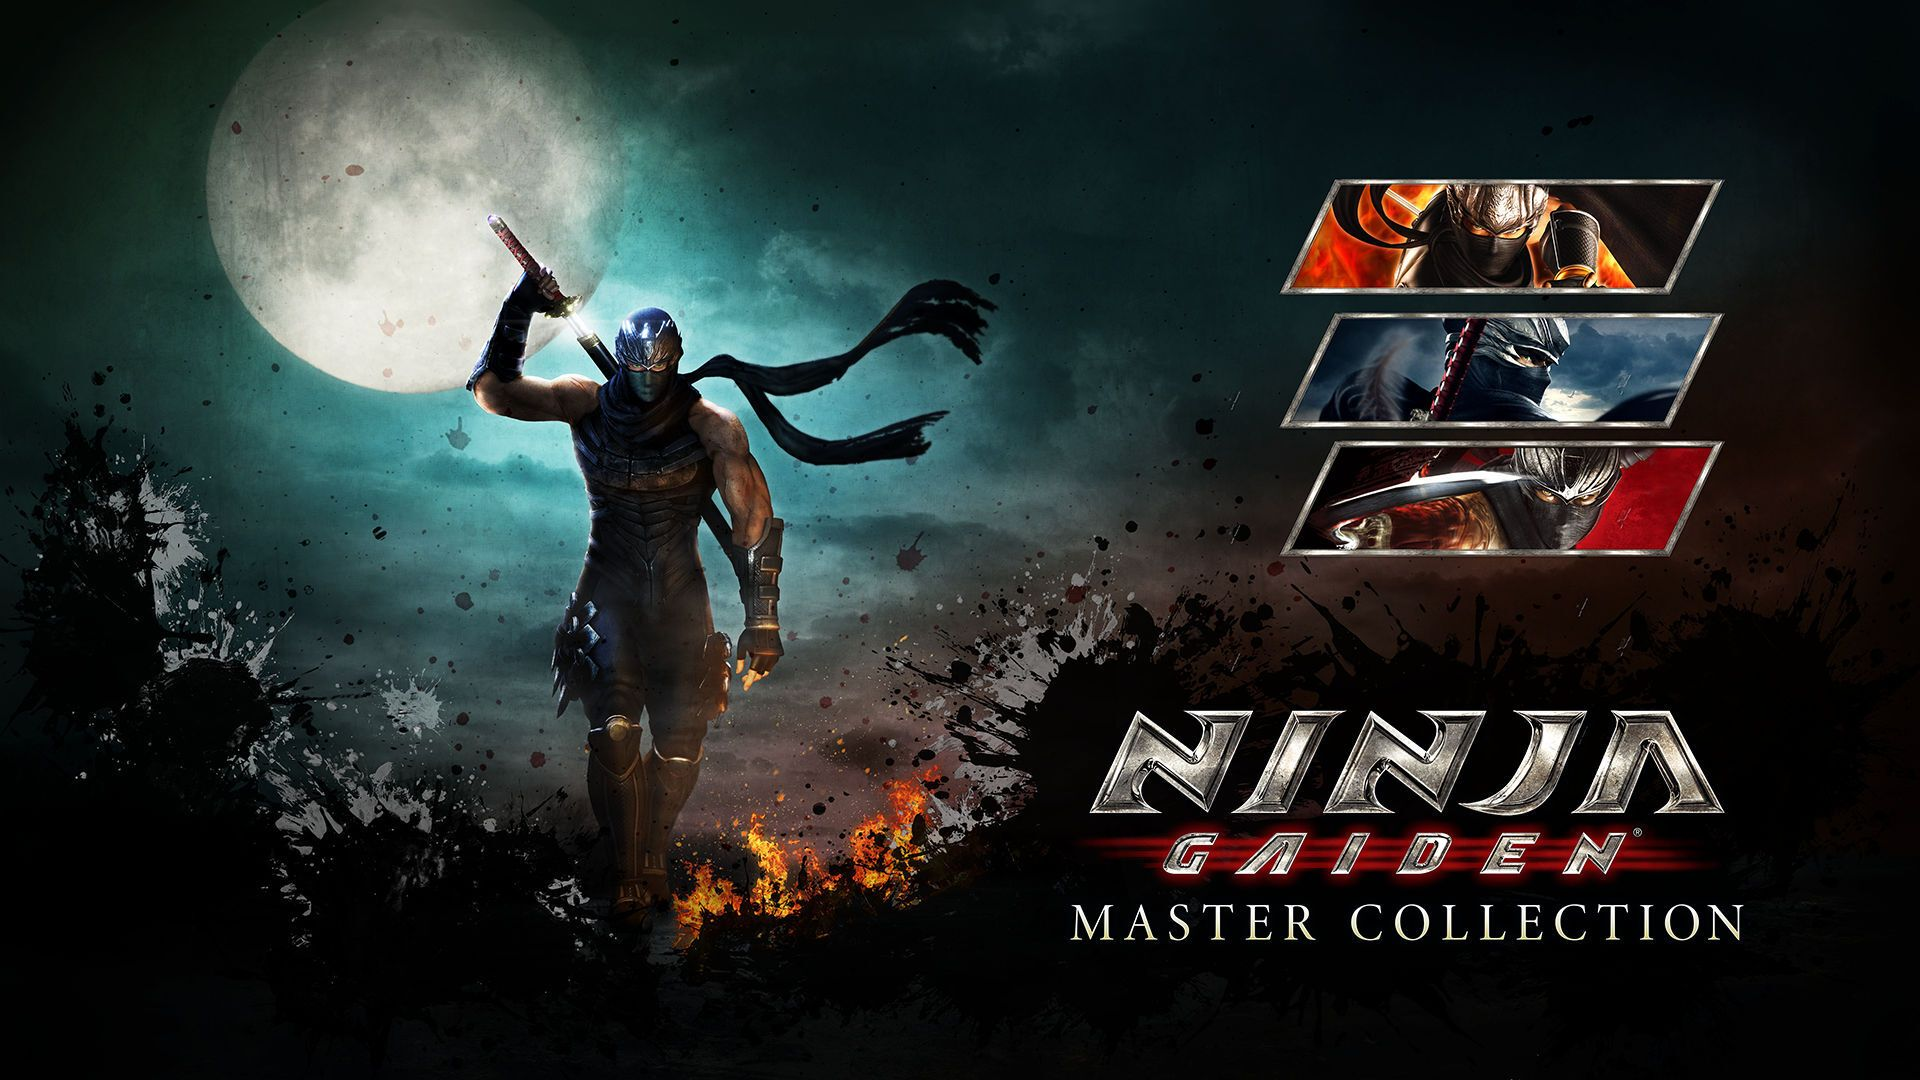 /ninja-gaiden-master-collection-arrives-for-all-platforms-on-june-10-tk1033jq feature image